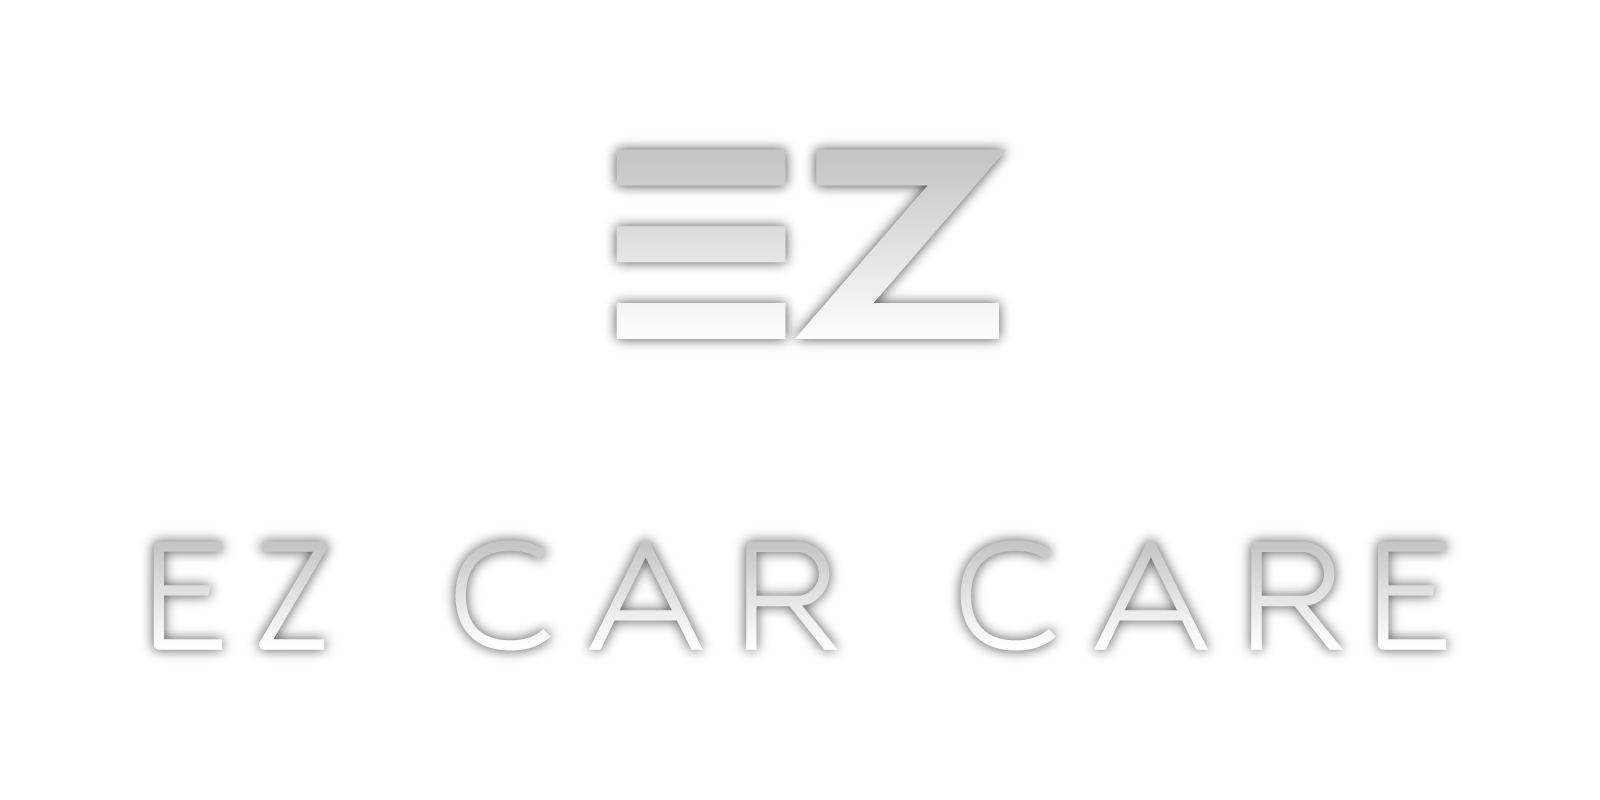 EZ-Car-Care-Master-NO-BG.png